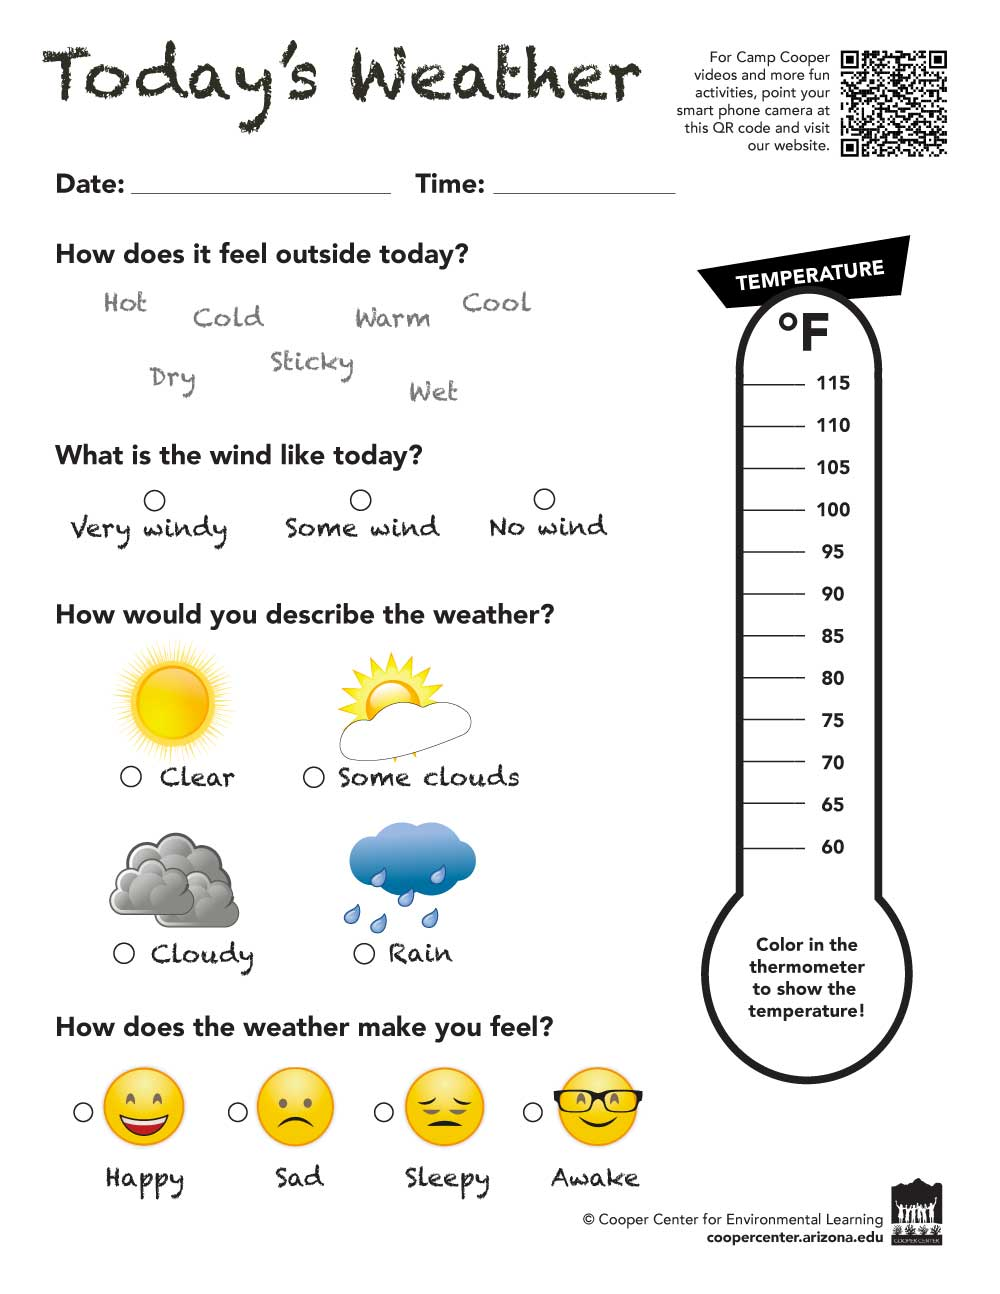 hight resolution of Weather Wise - Camp Cooper Online Environmental Learning Activites for K - 5th  Grade   Cooper Center